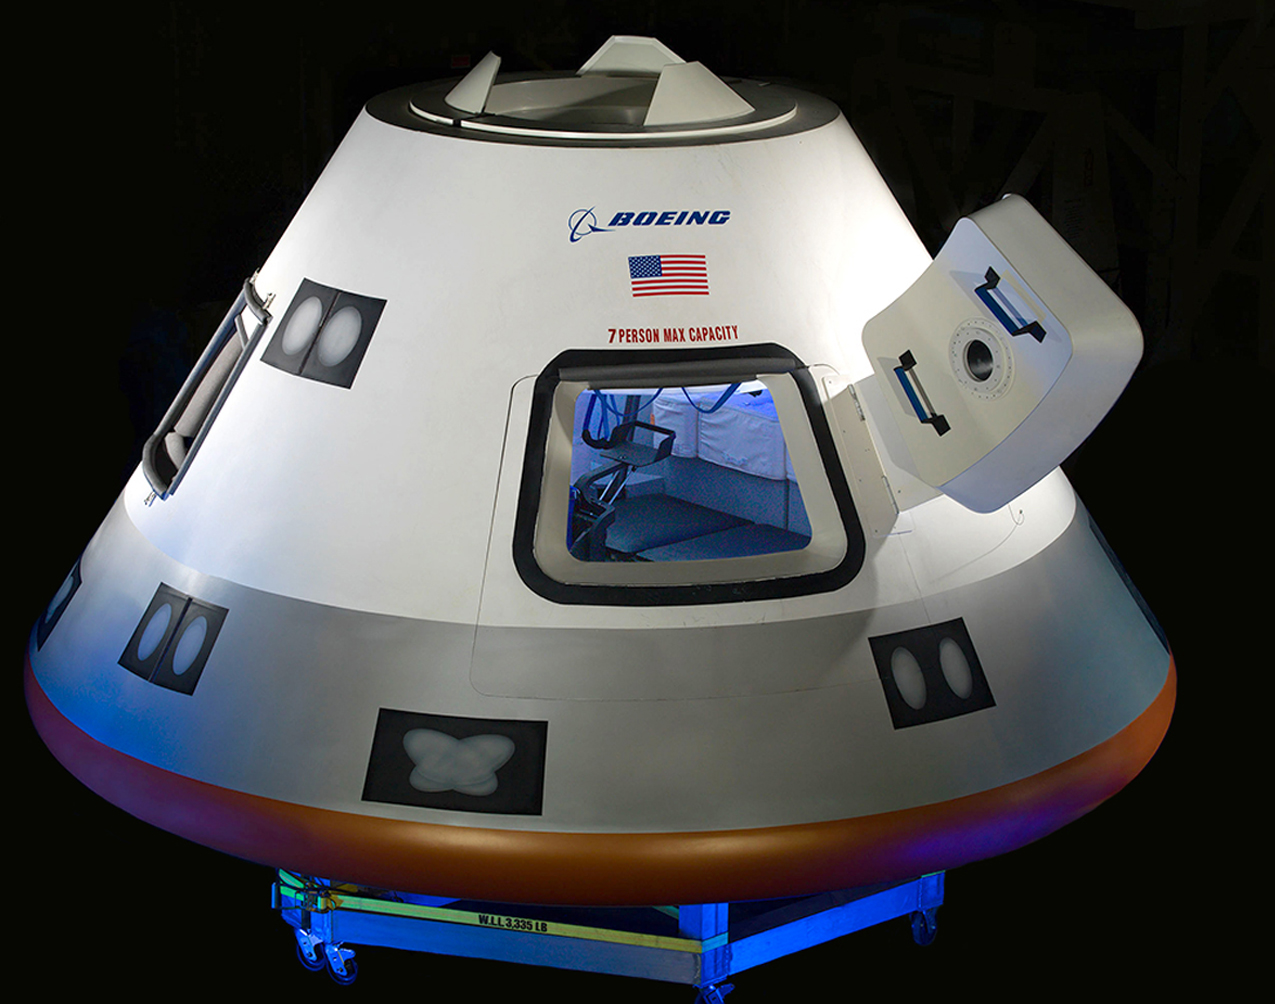 Apps in Space! Boeing Looking at Mobile Tech for New Astronaut Taxi